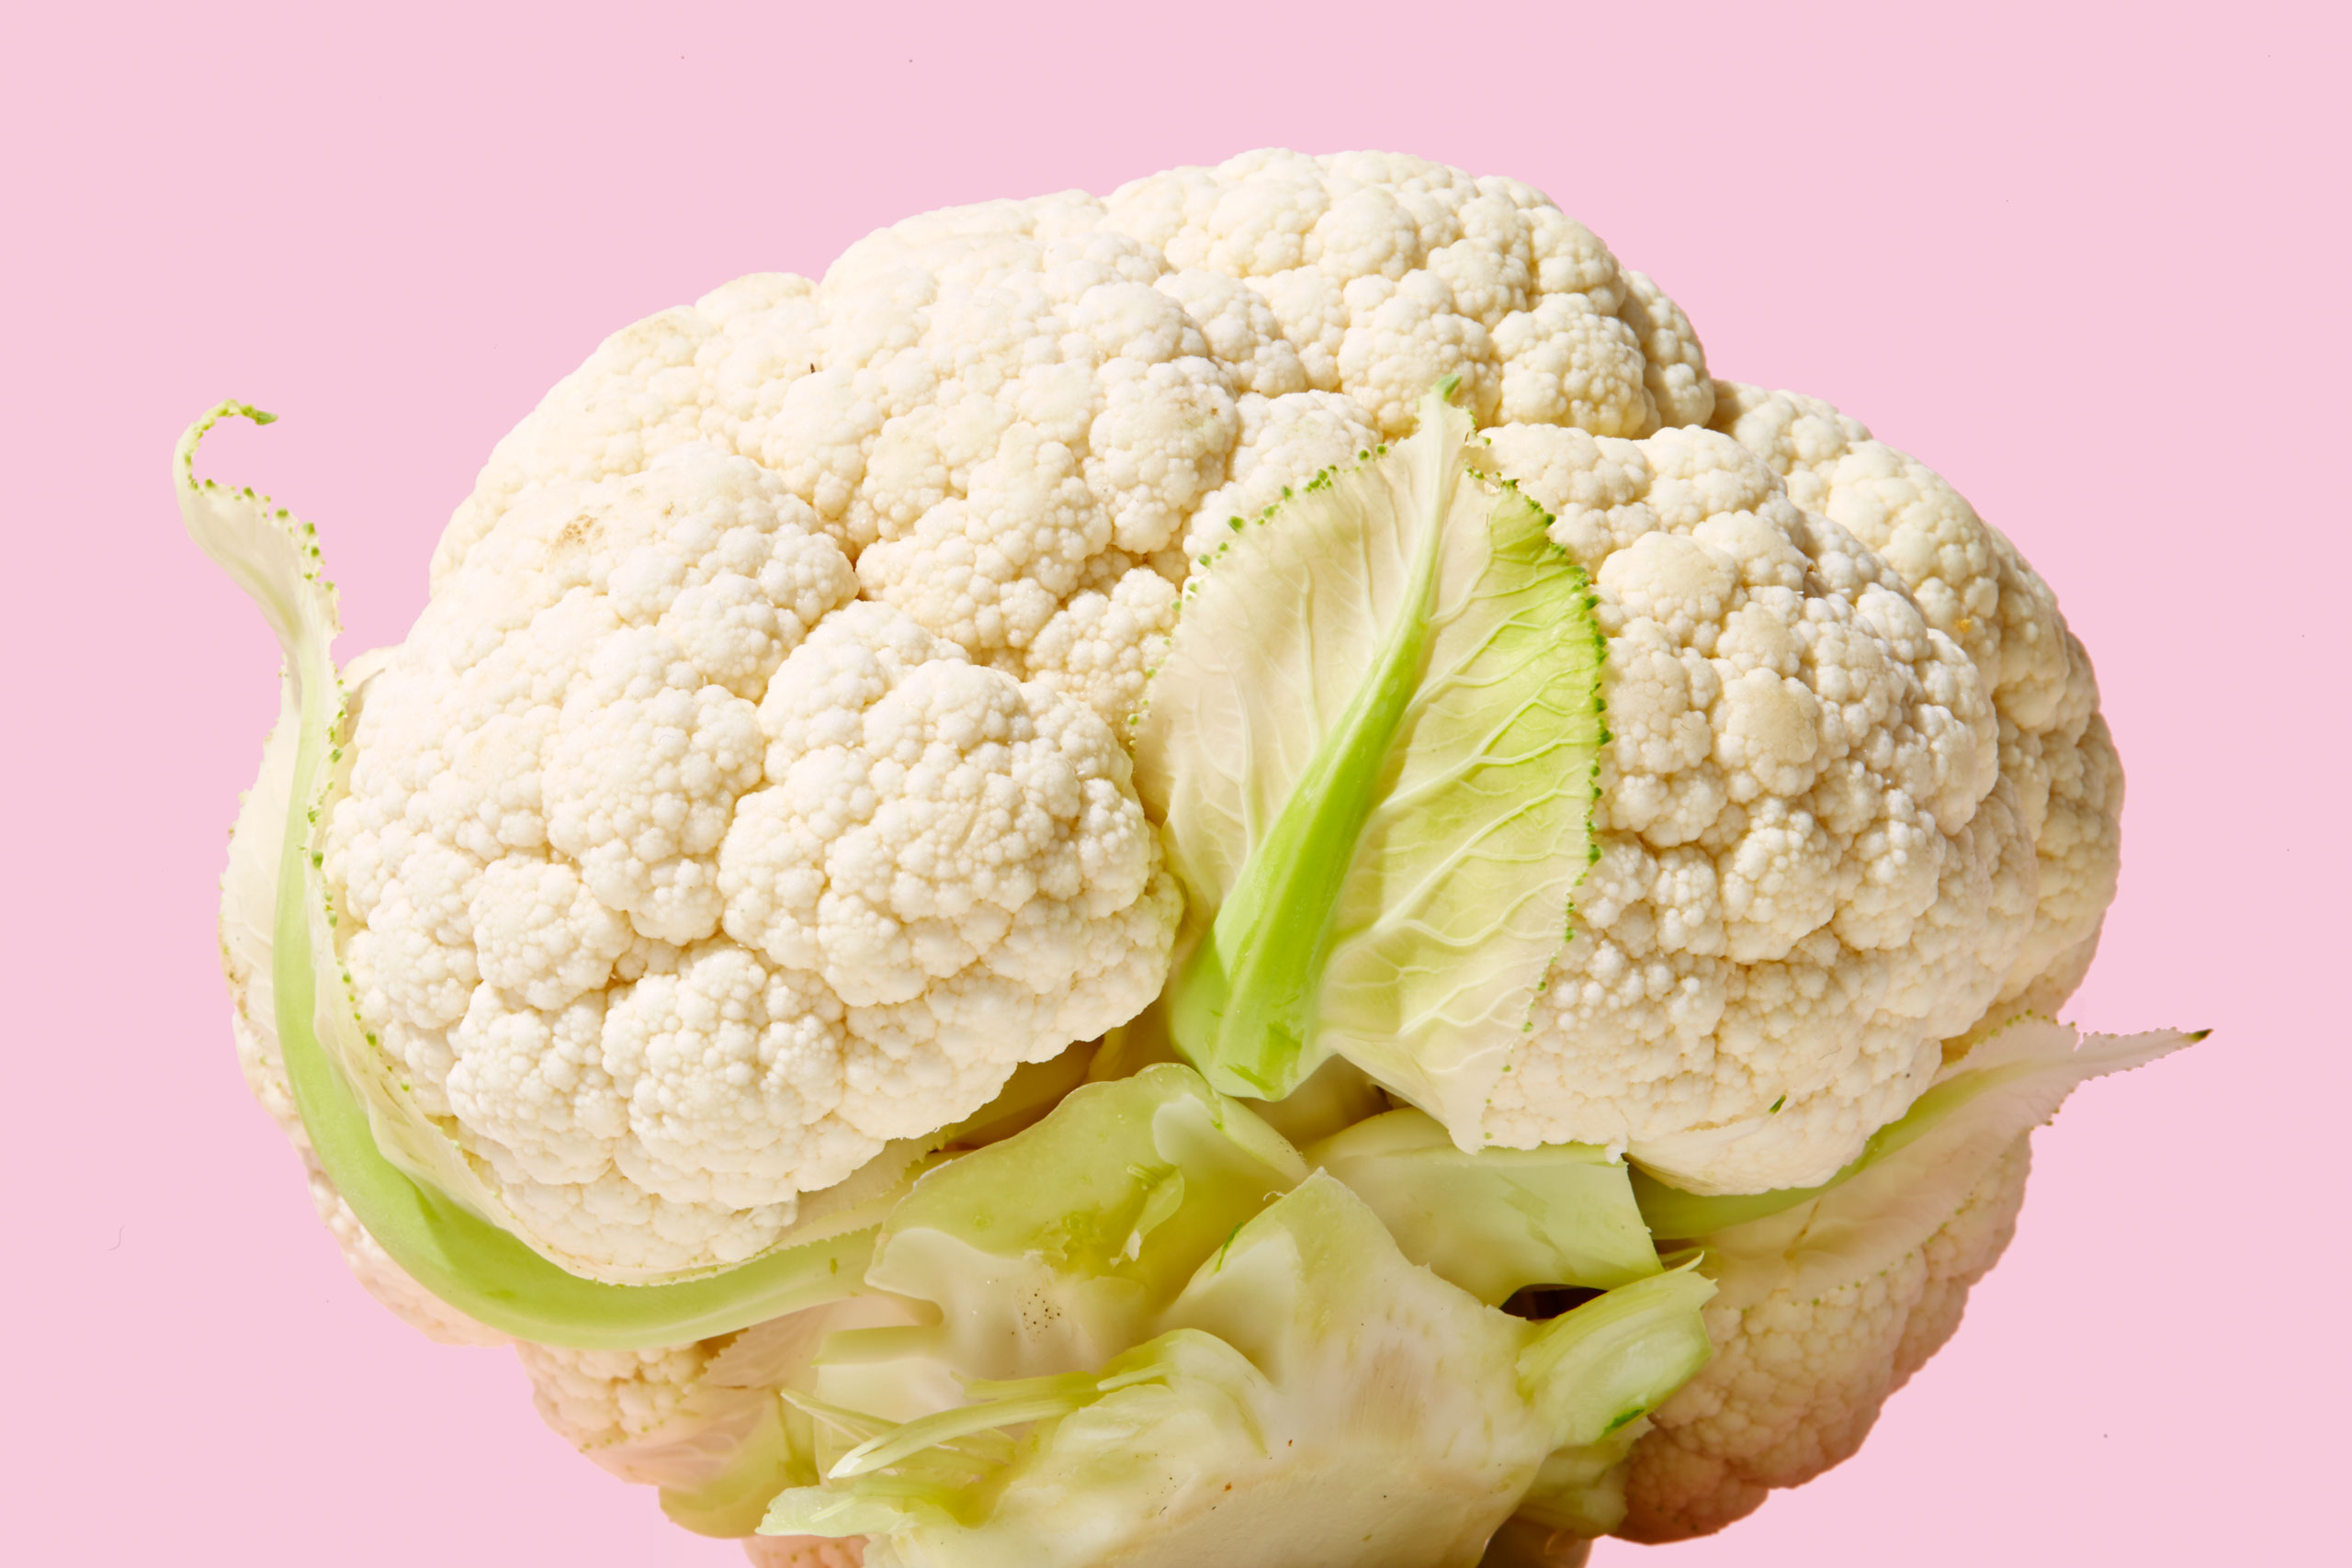 healthiest foods, health food, diet, nutrition, time.com stock, cauliflower, vegetables